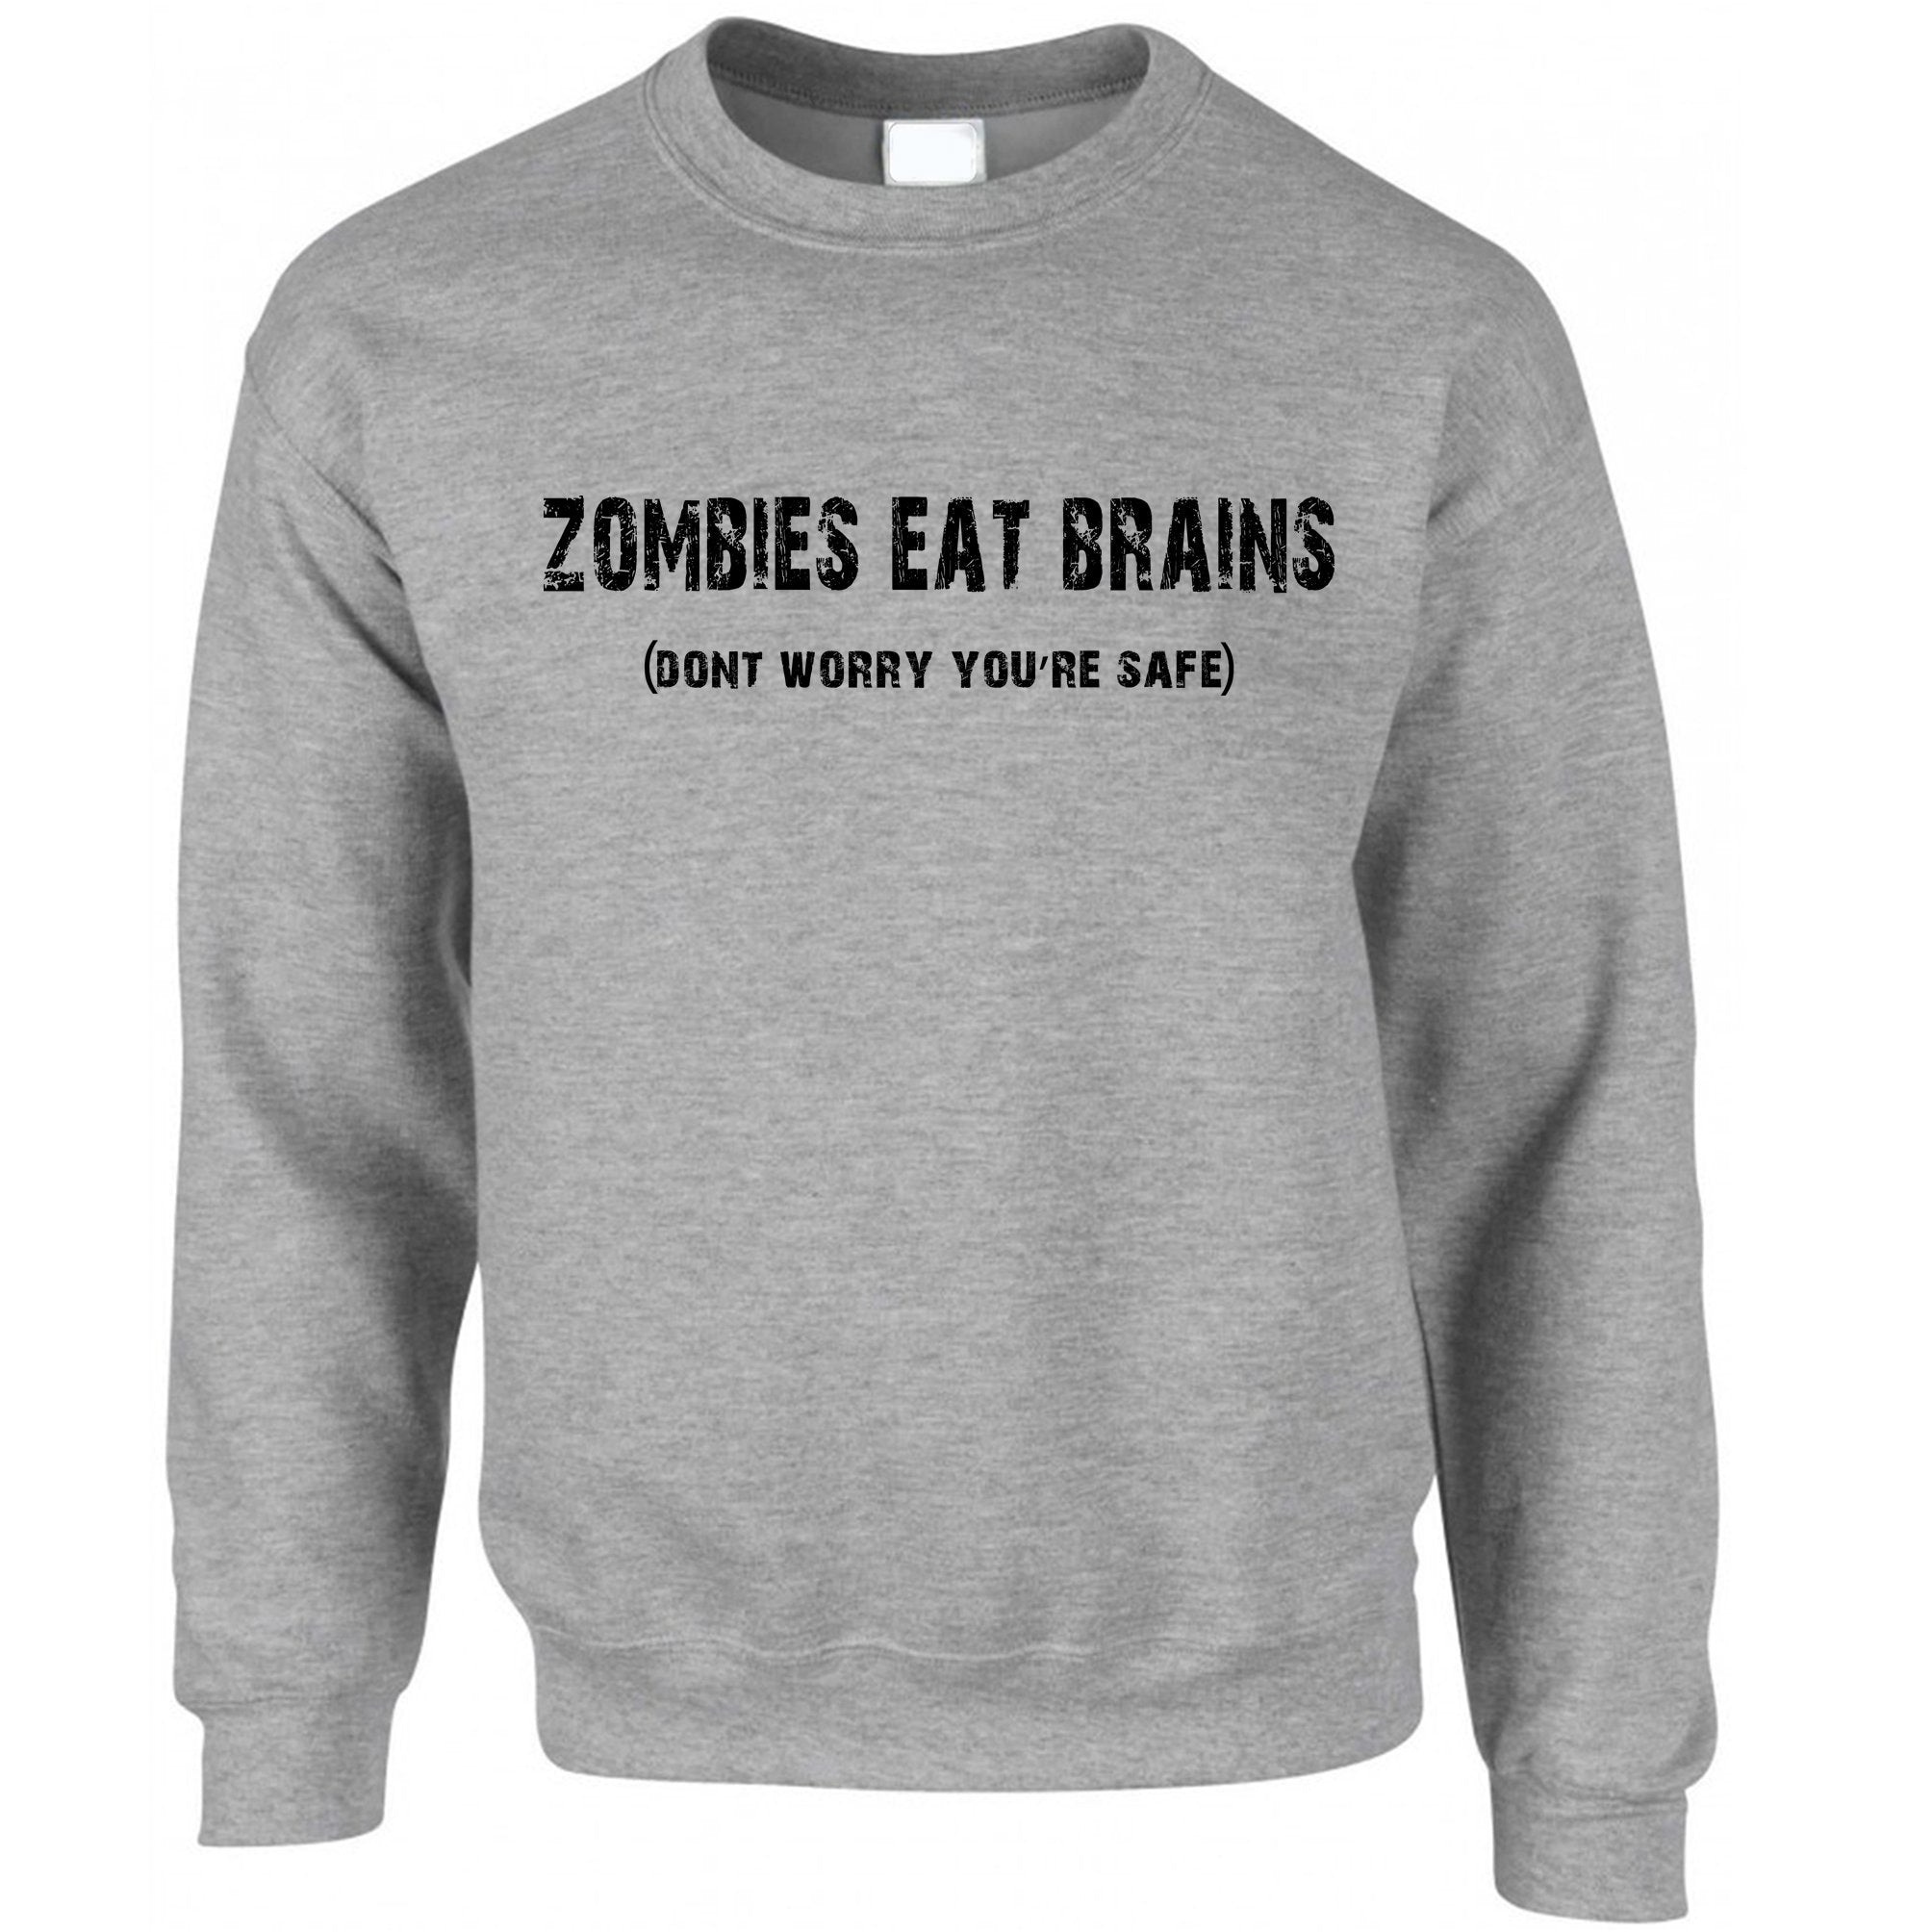 Halloween Jumper Zombies Eat Brains, You're Safe Sweatshirt Sweater